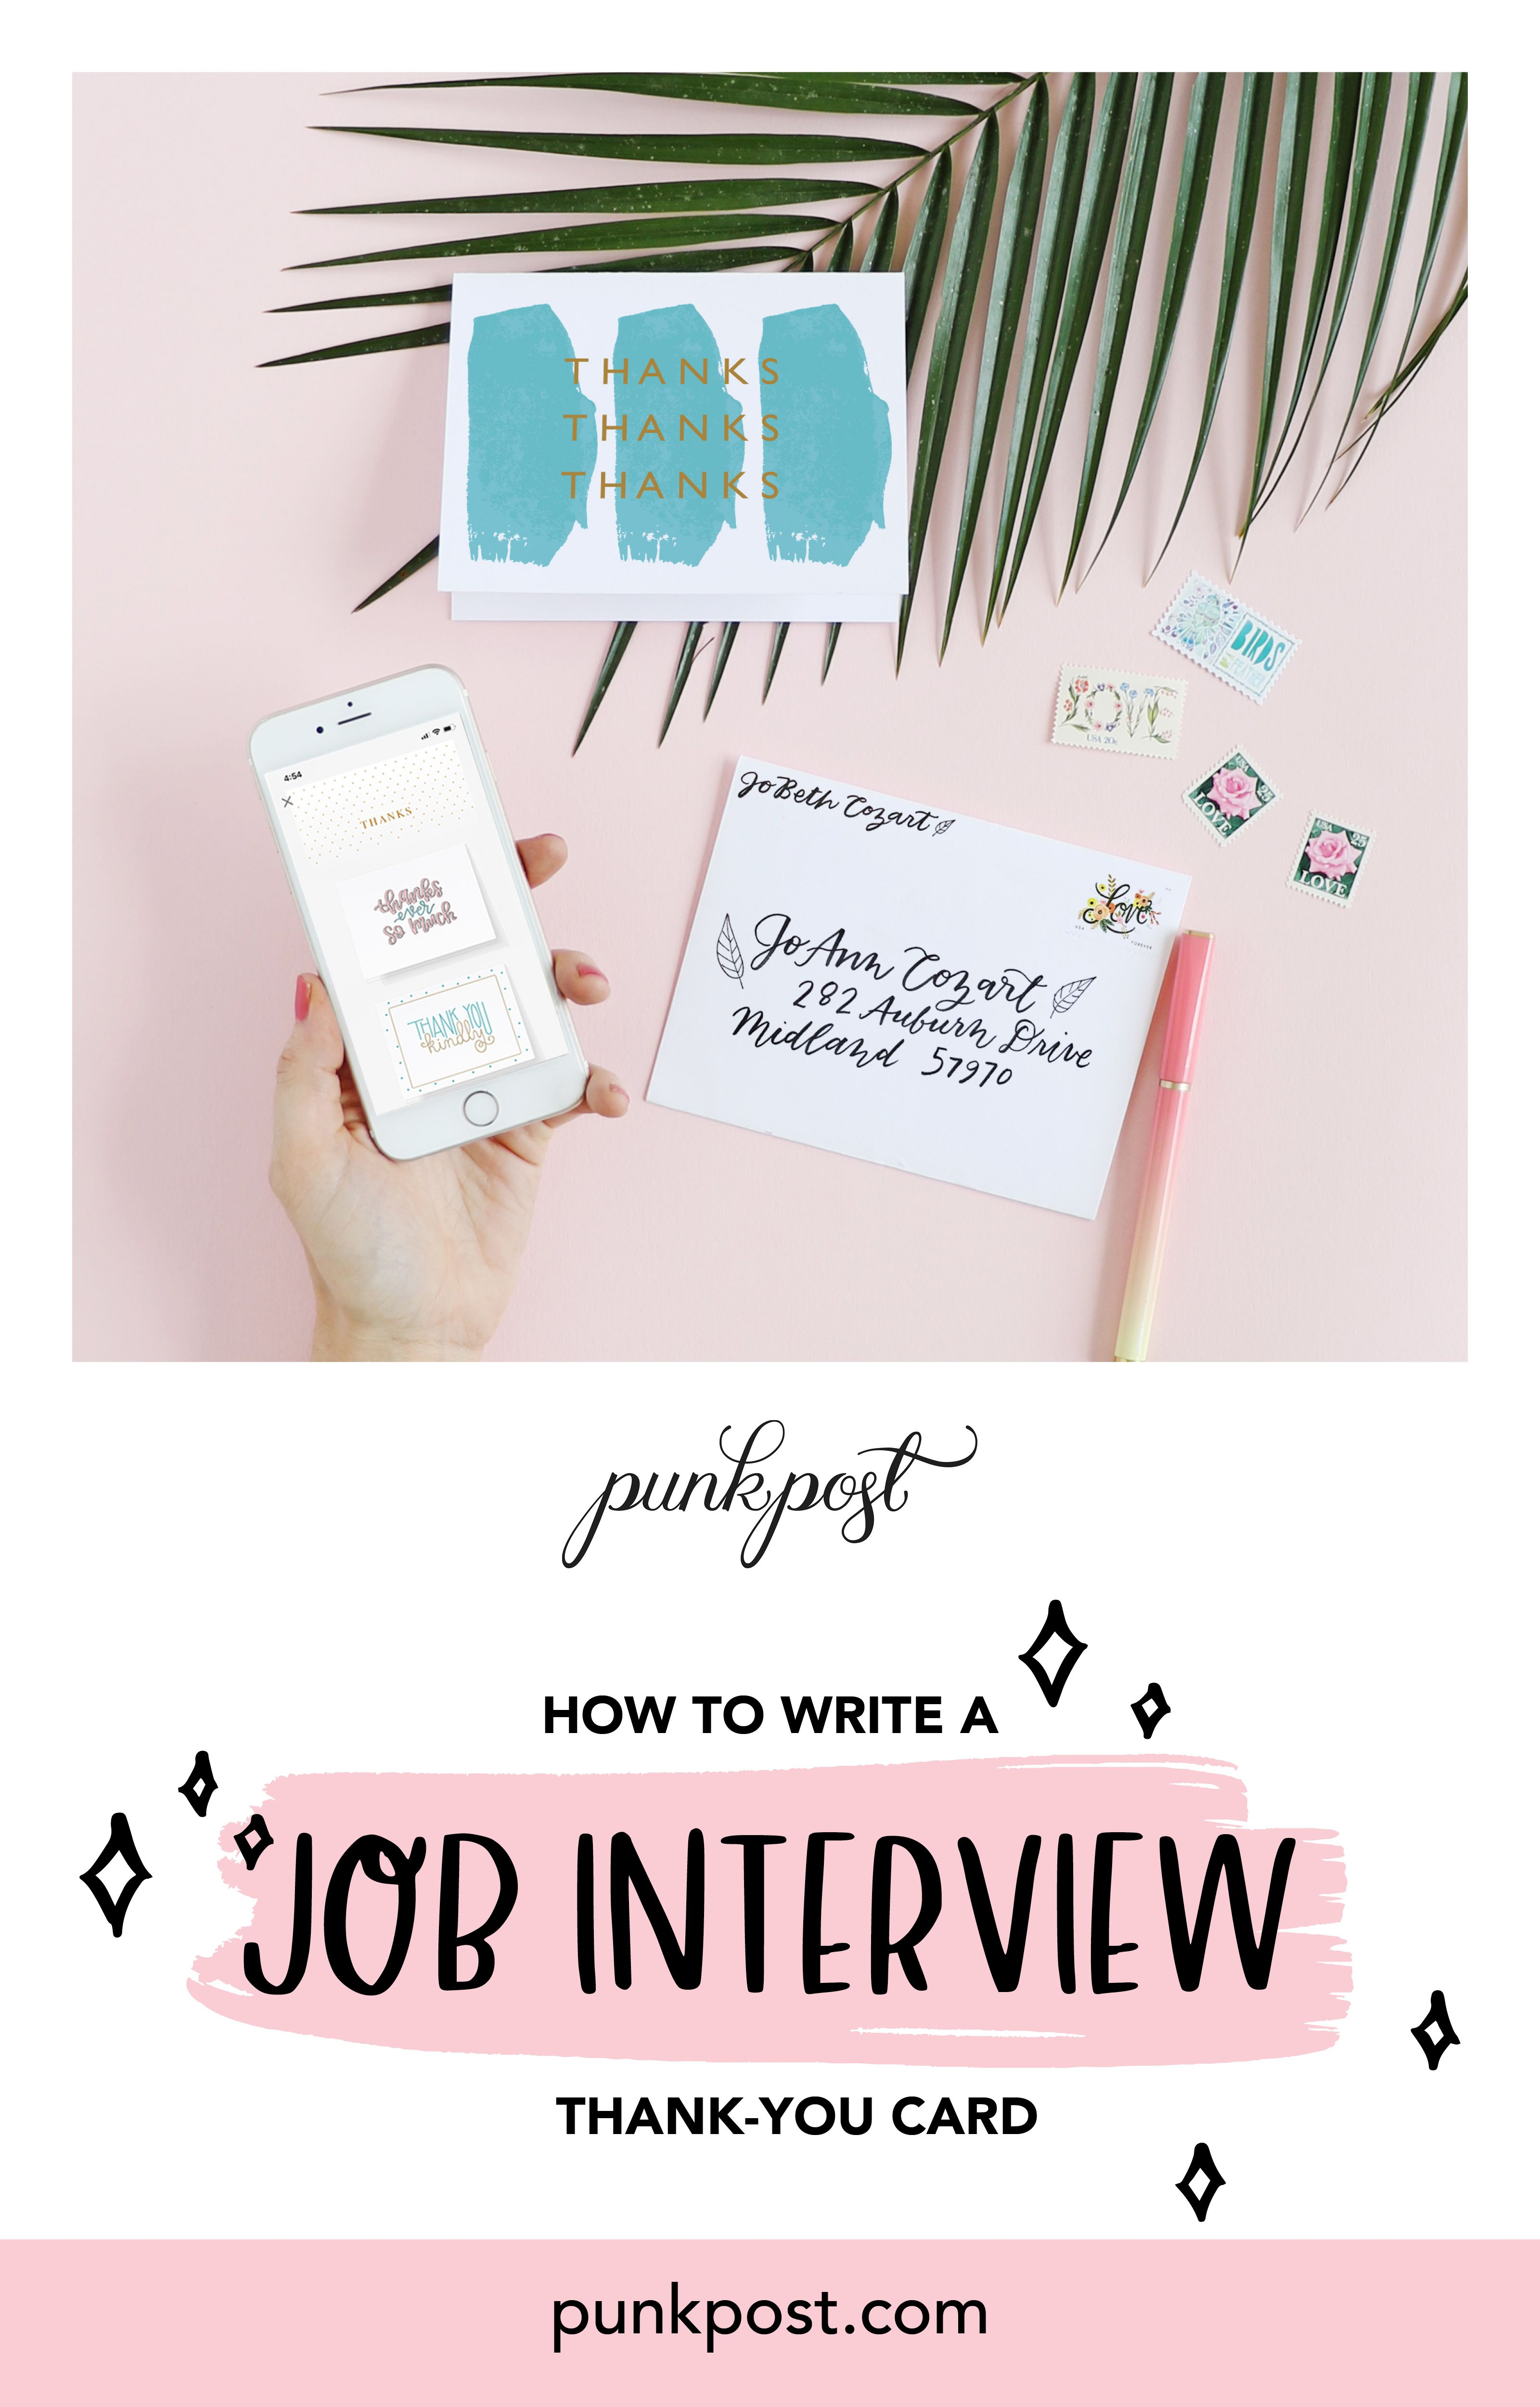 how to write a job interview thankyou card with images